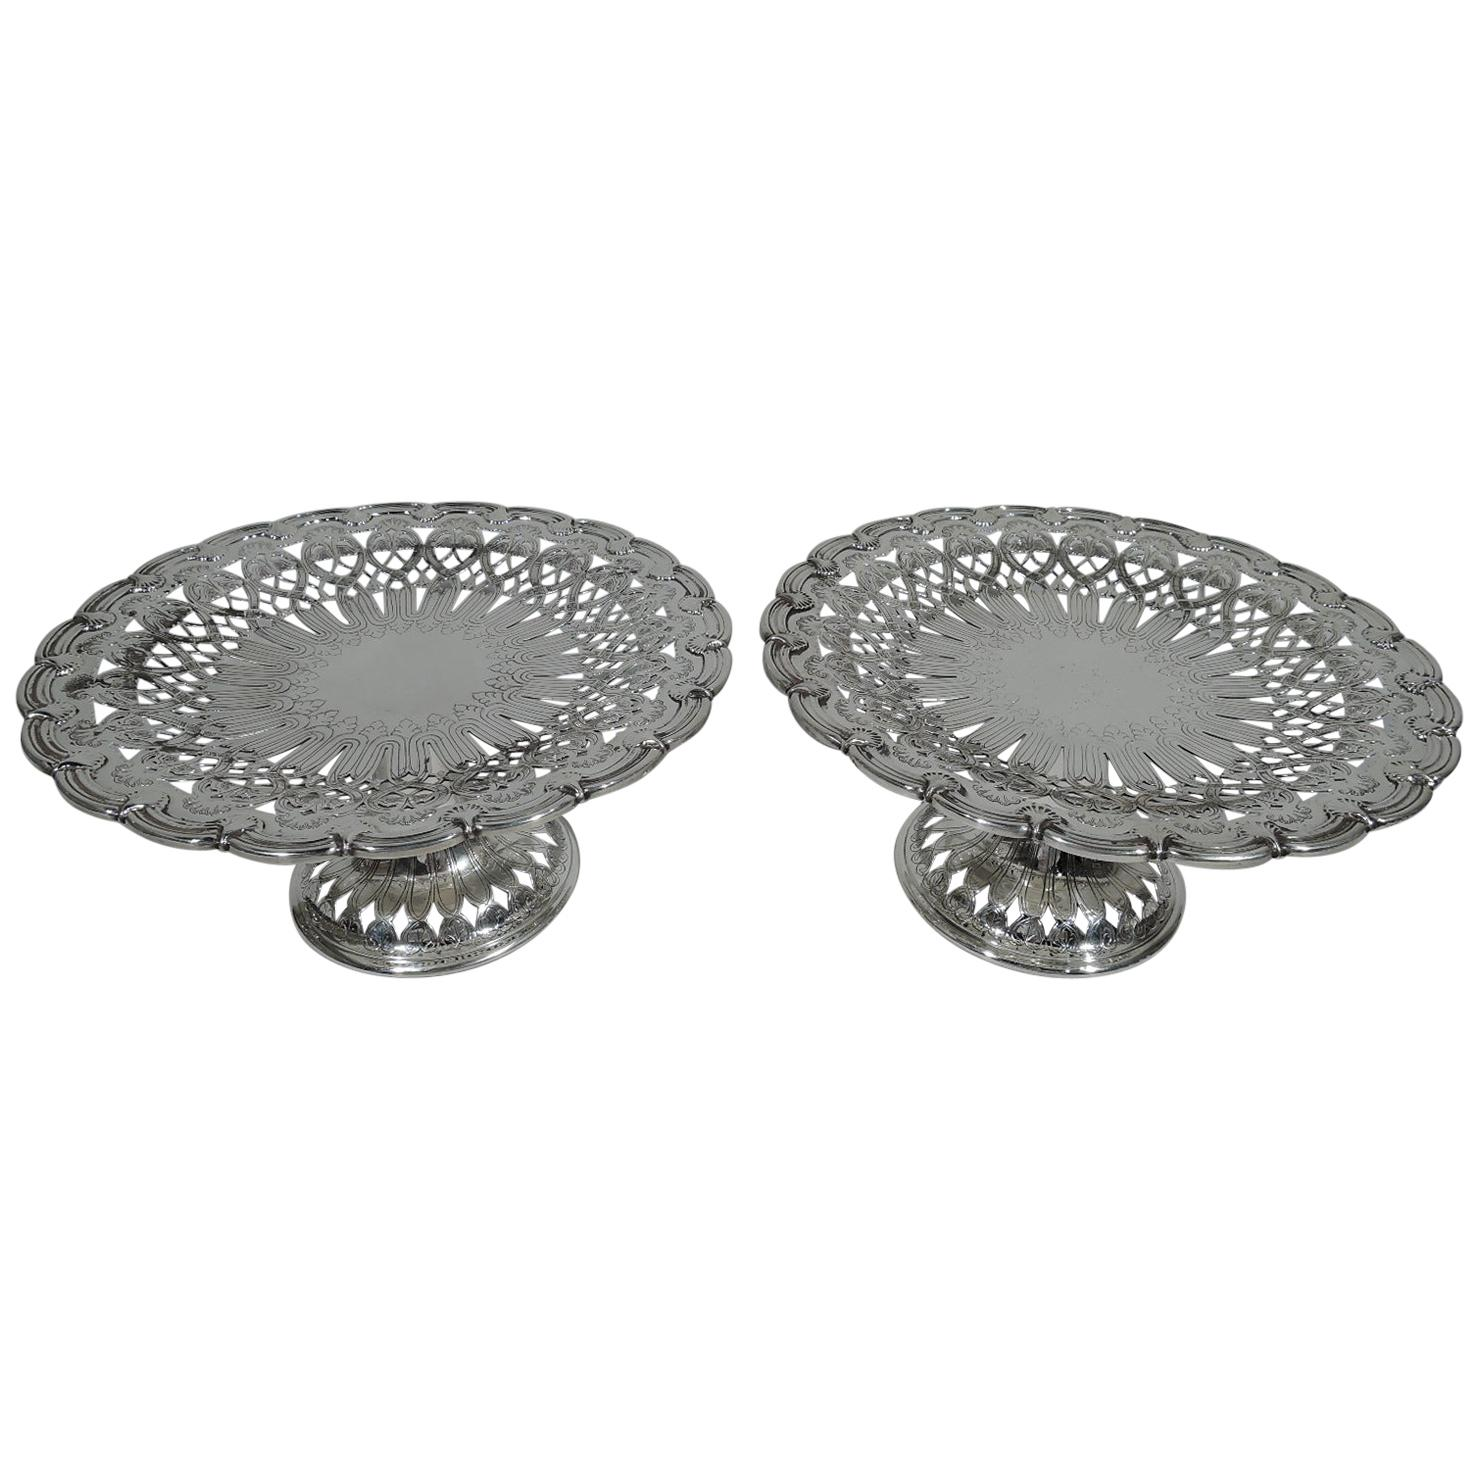 Pair of Tiffany Edwardian Art Nouveau Sterling Silver Compotes